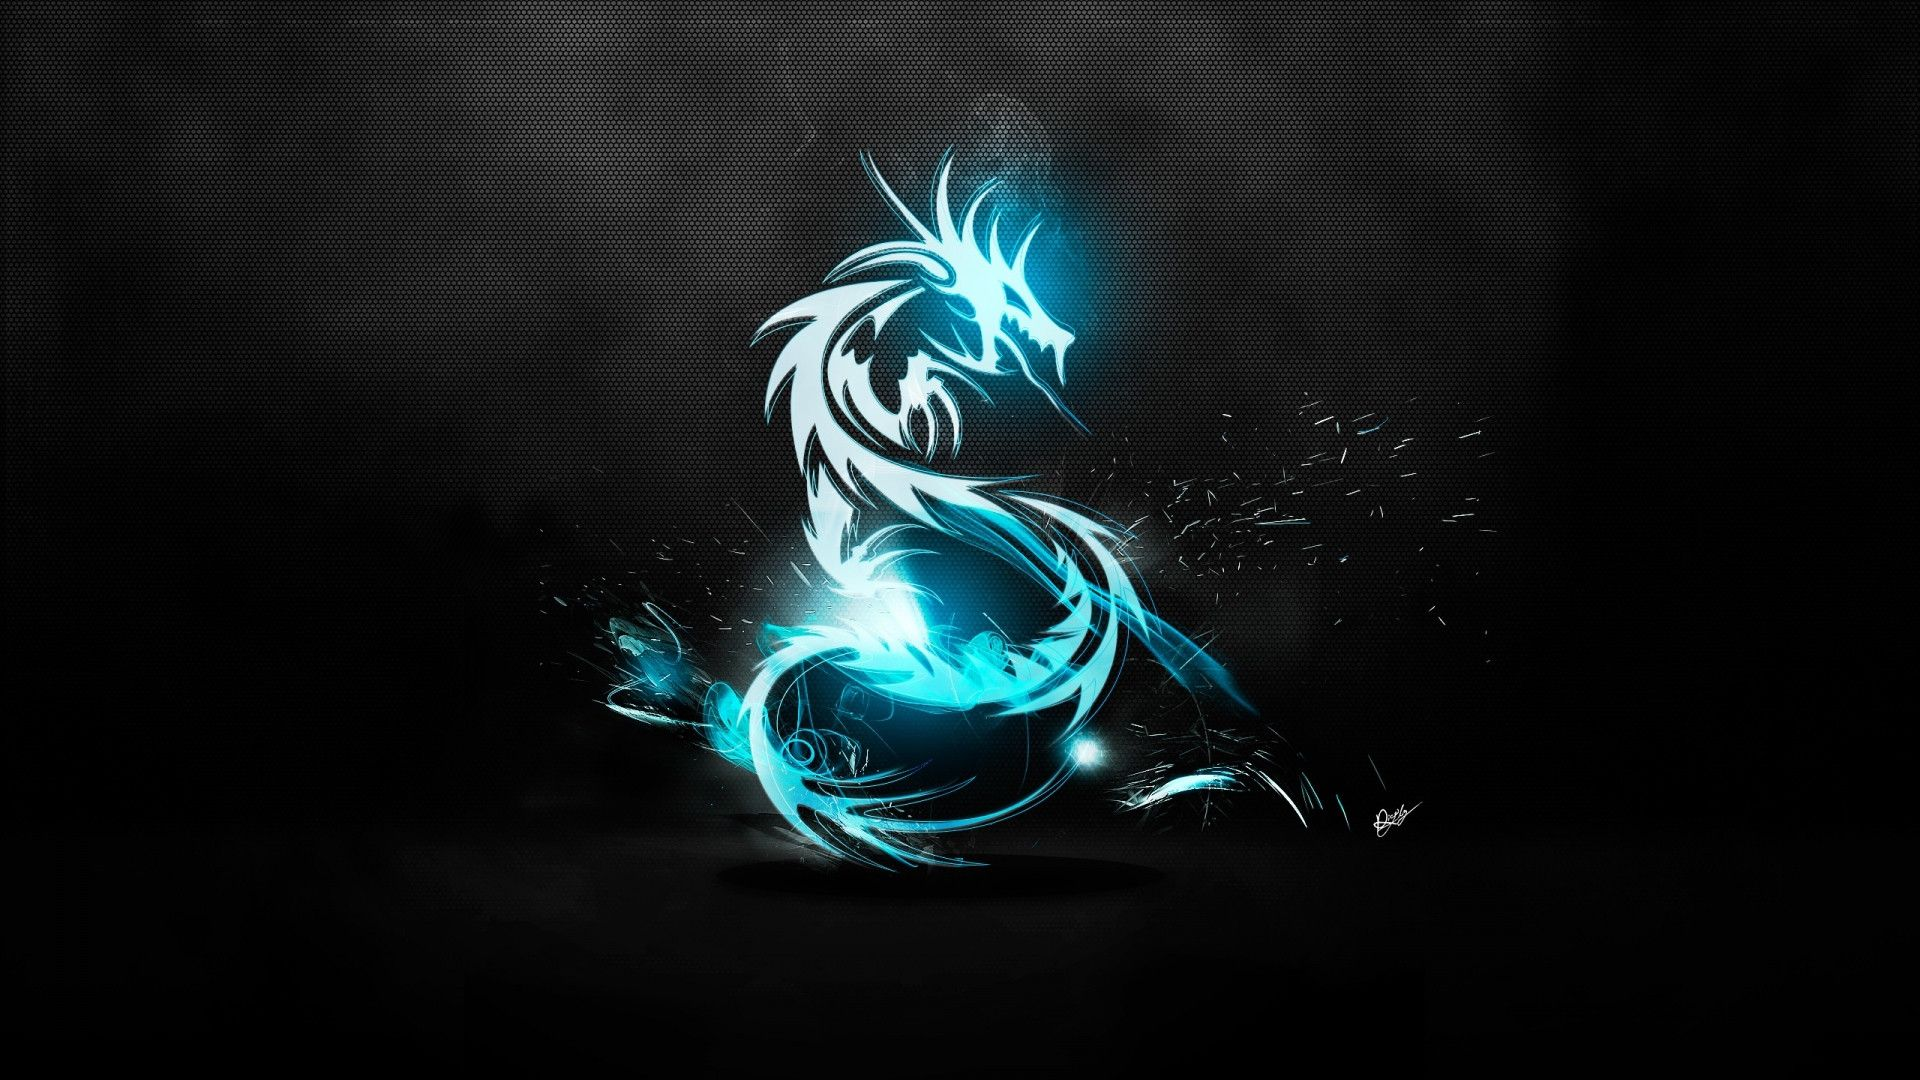 Amazing-Dragon-1920-X-1080-Need-iPhone-S-Plus-Background-for-IPhoneSP-wallpaper-wp3402294